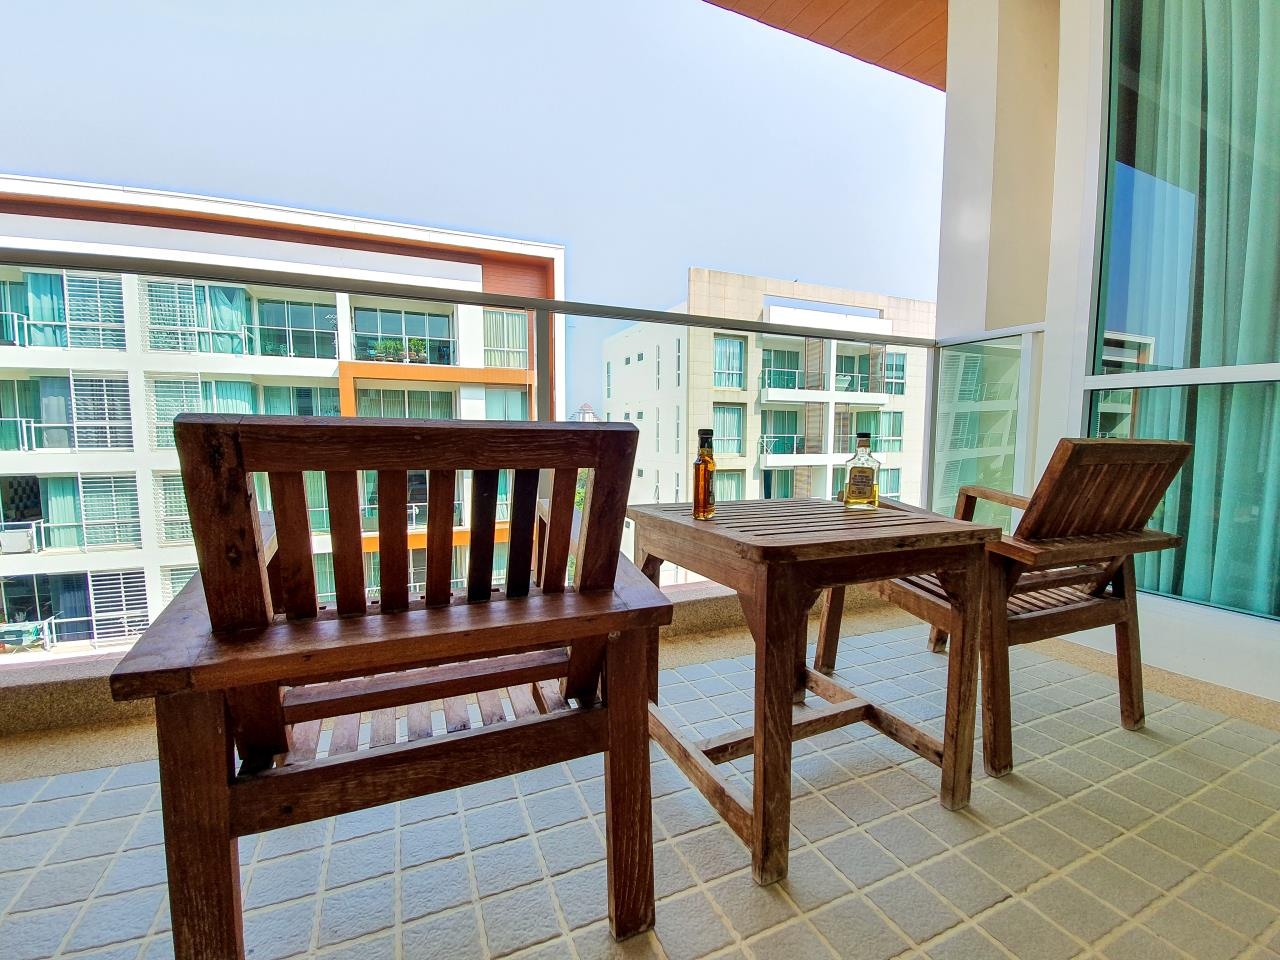 HOME - Real Estate Service Agency's The Breeze Hua Hin / 2 Beds (FOR RENT), เดอะ บรีซ หัวหิน / 2 ห้องนอน (ให้เช่า) T008 7